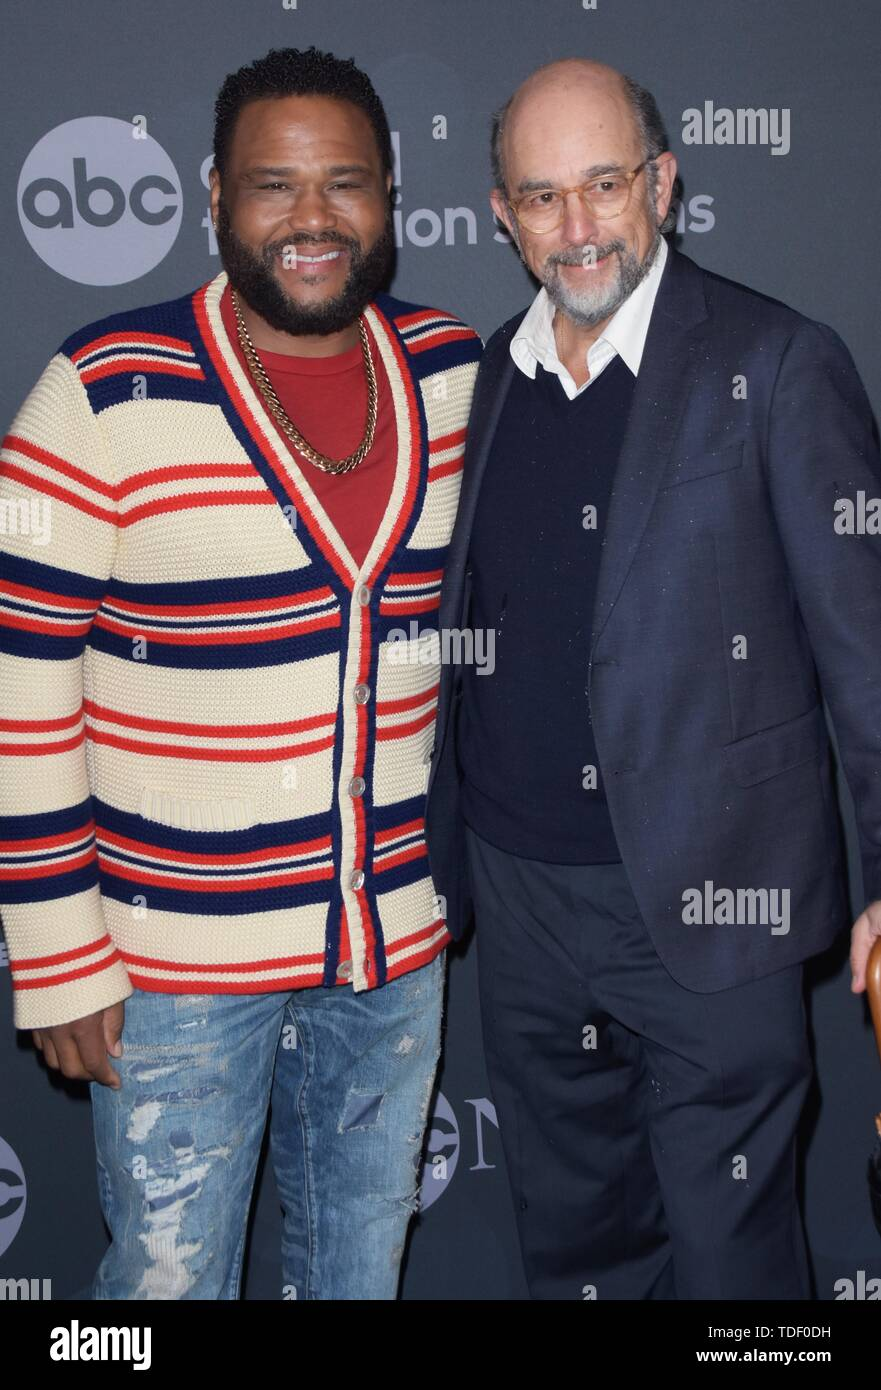 ABC Disney Upfront NYC  Featuring: Anthony Anderson Where: NYC, New York, United States When: 15 May 2019 Credit: Patricia Schlein/WENN.com - Stock Image